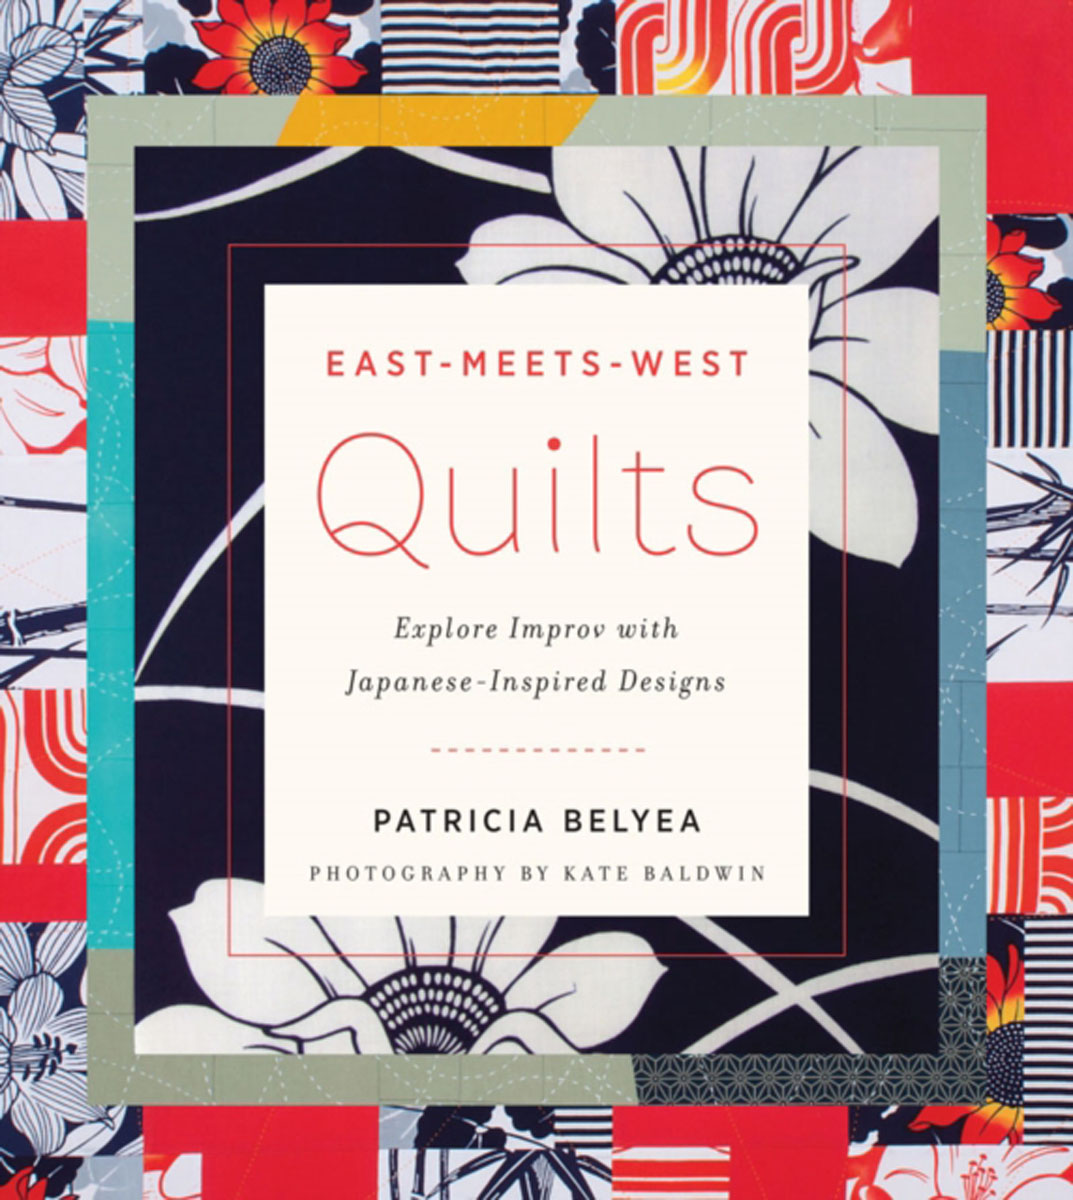 East-Meets-West Quilts managing projects made simple